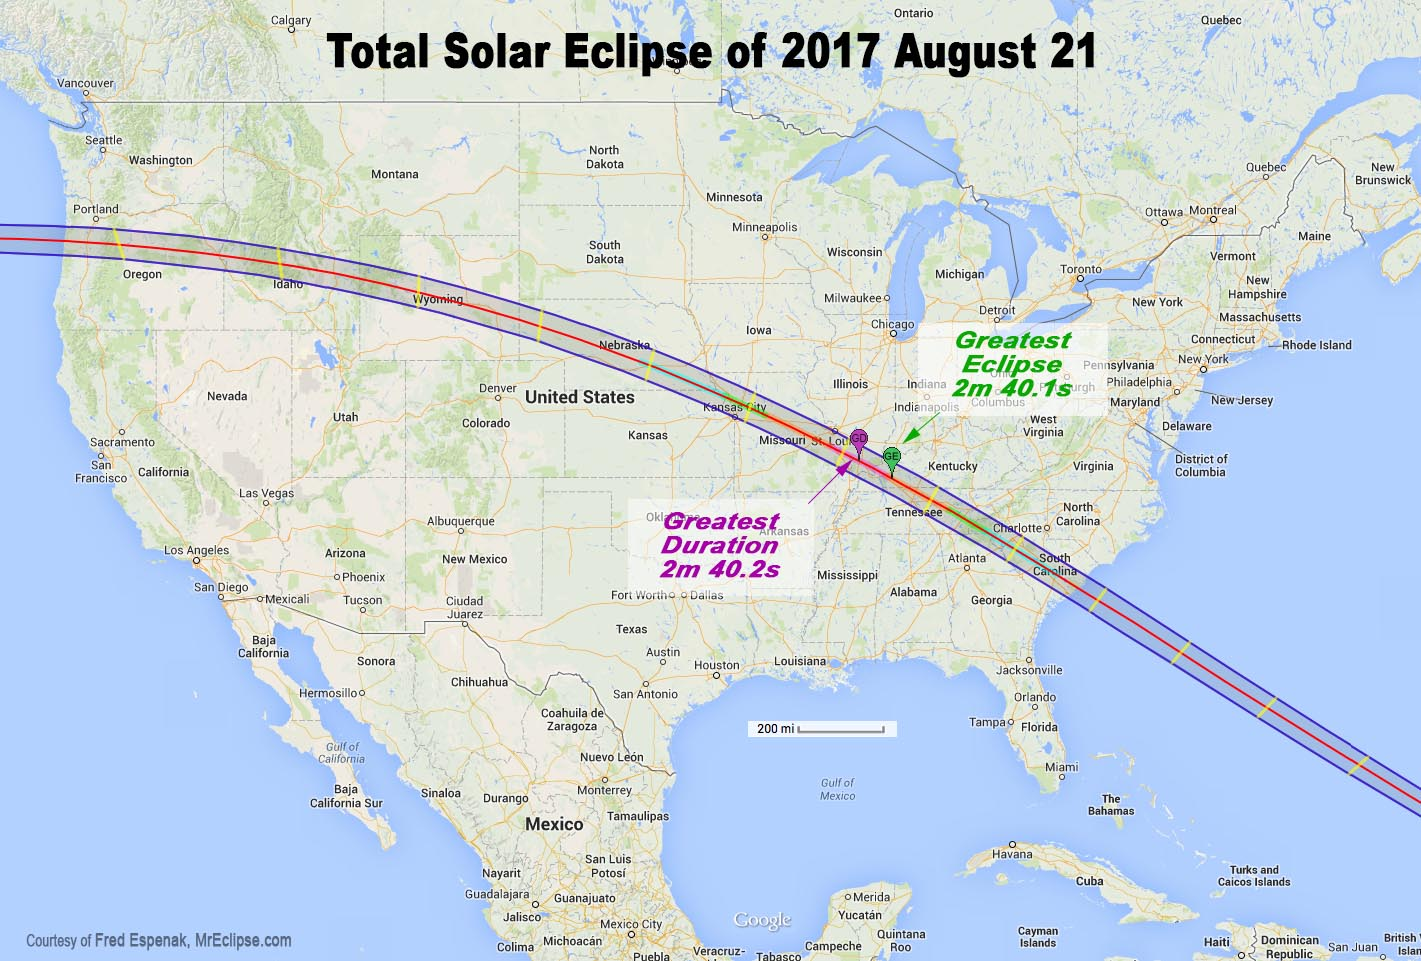 Path of the 2017 Total Solar Eclipse